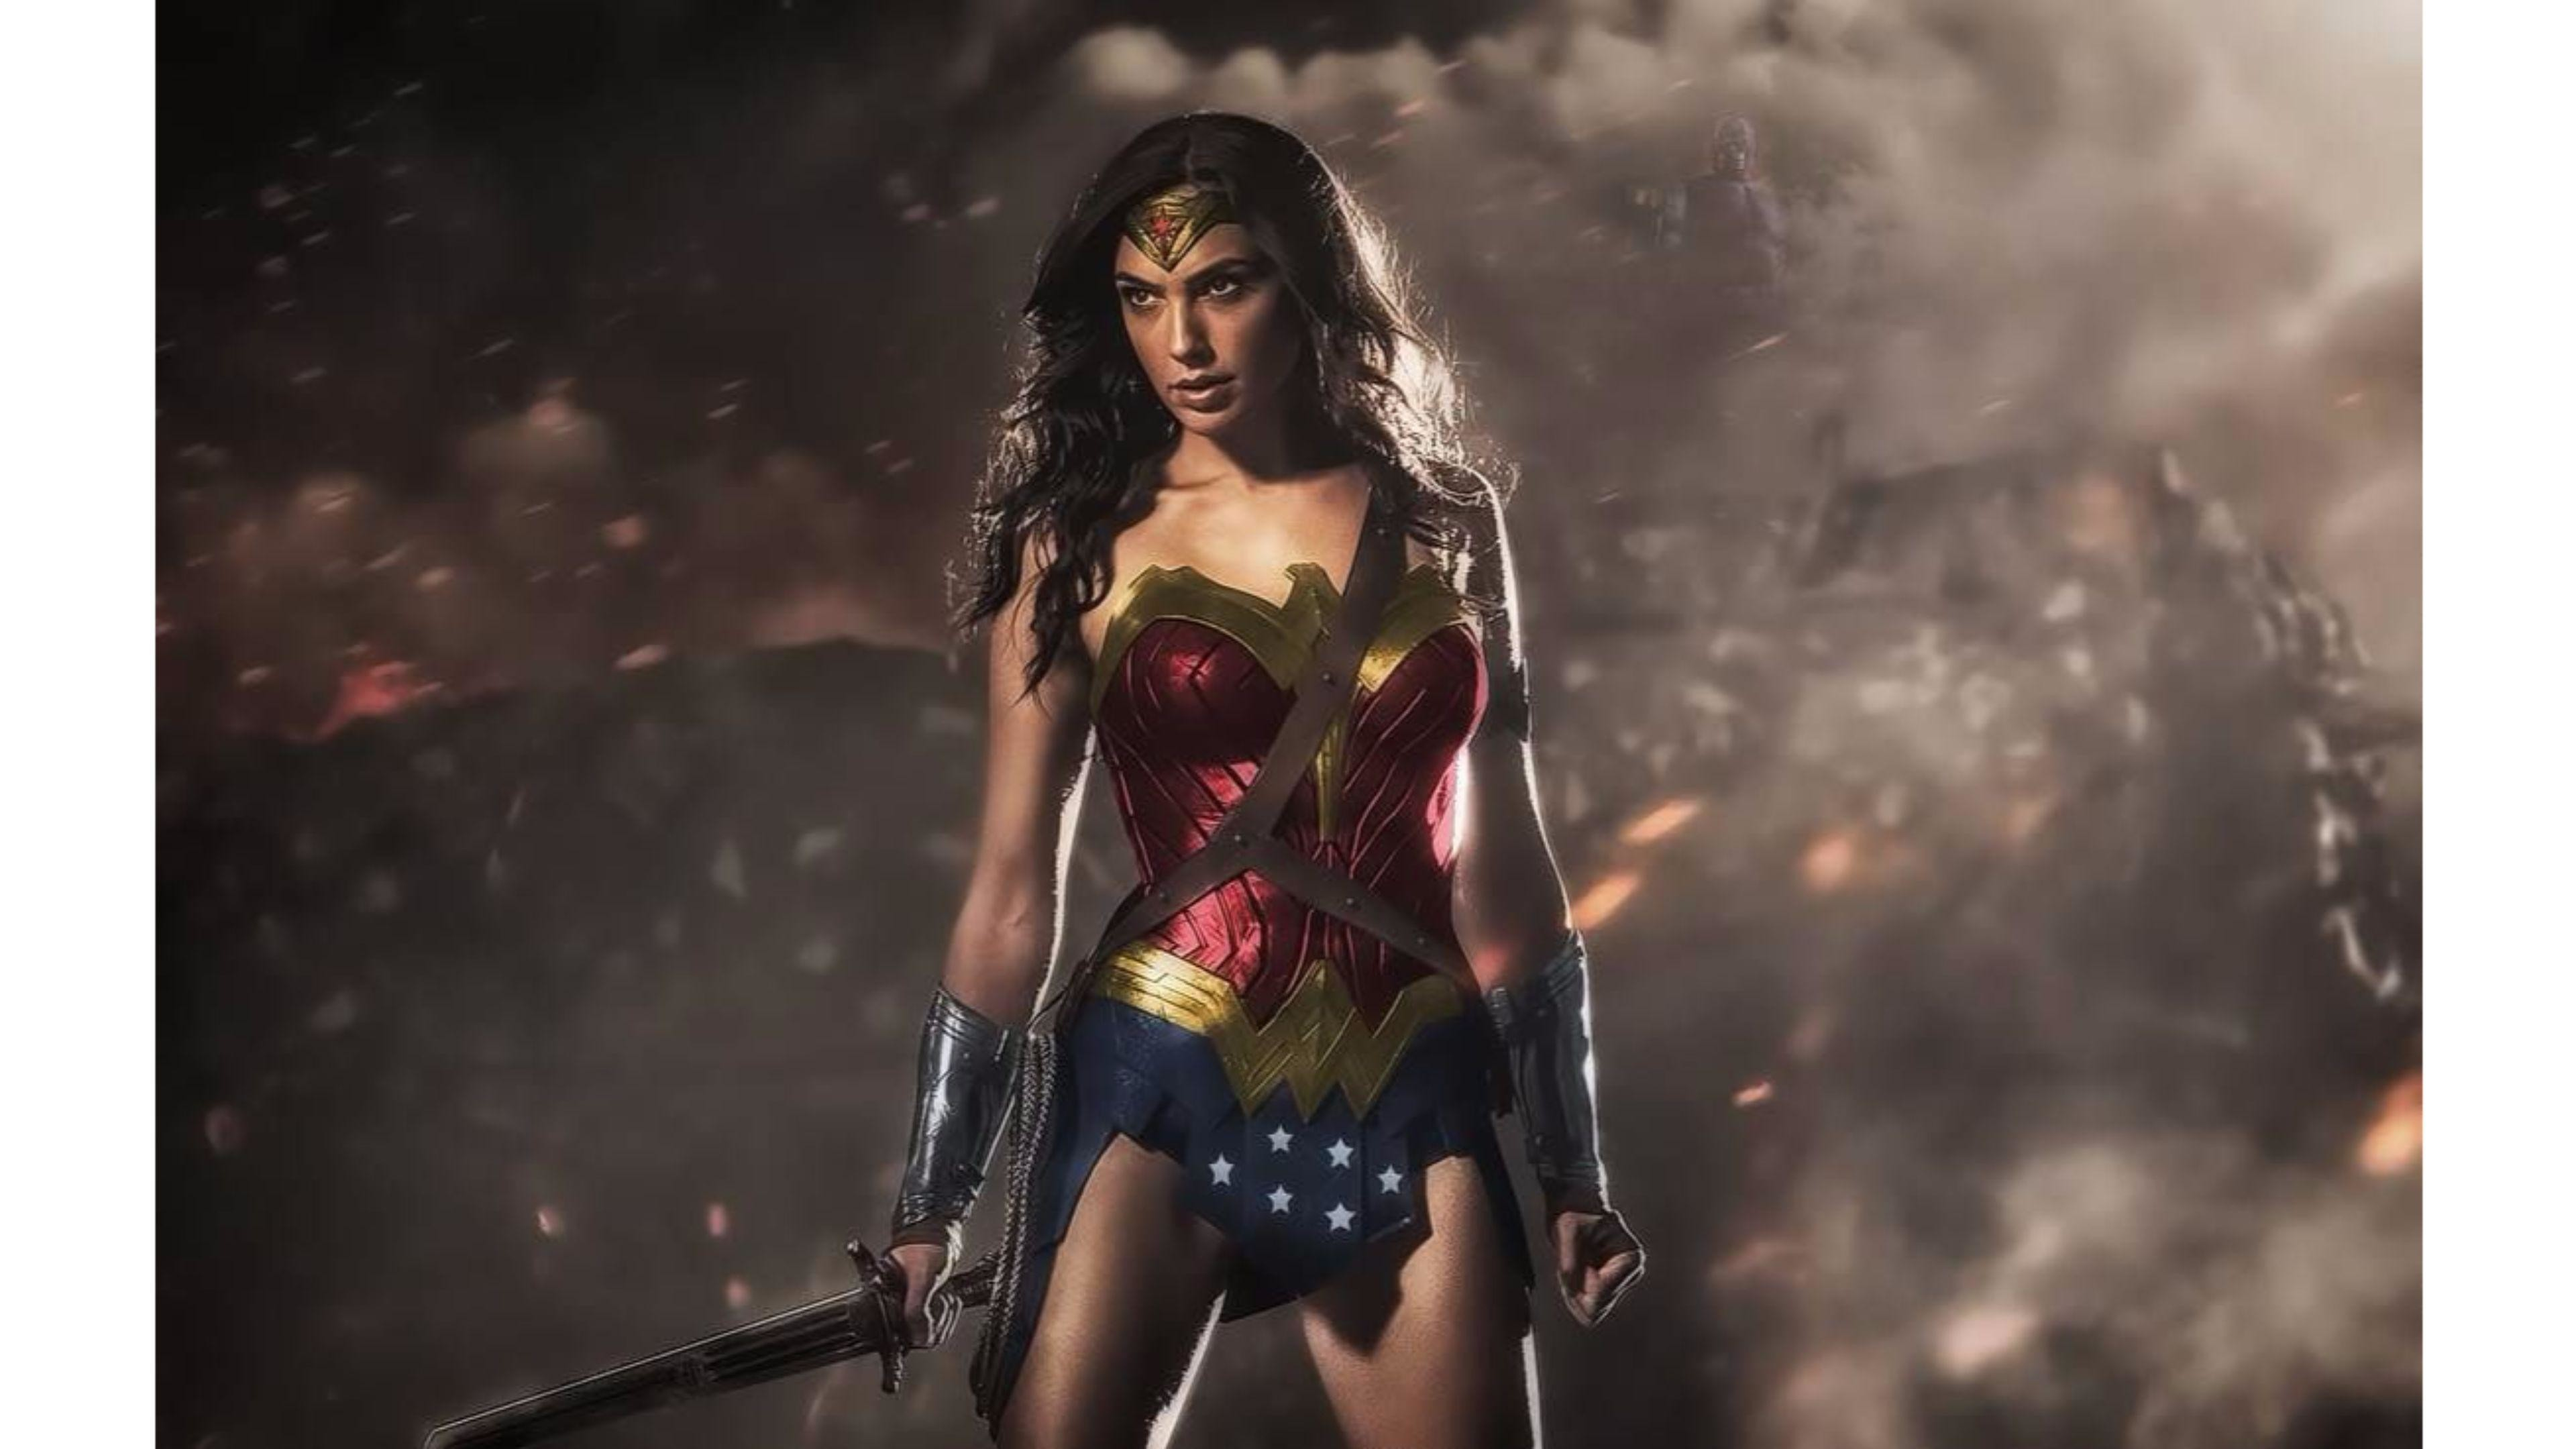 3840x2160 Wonder Woman Wallpaper Full Hd ~ Sdeerwallpaper